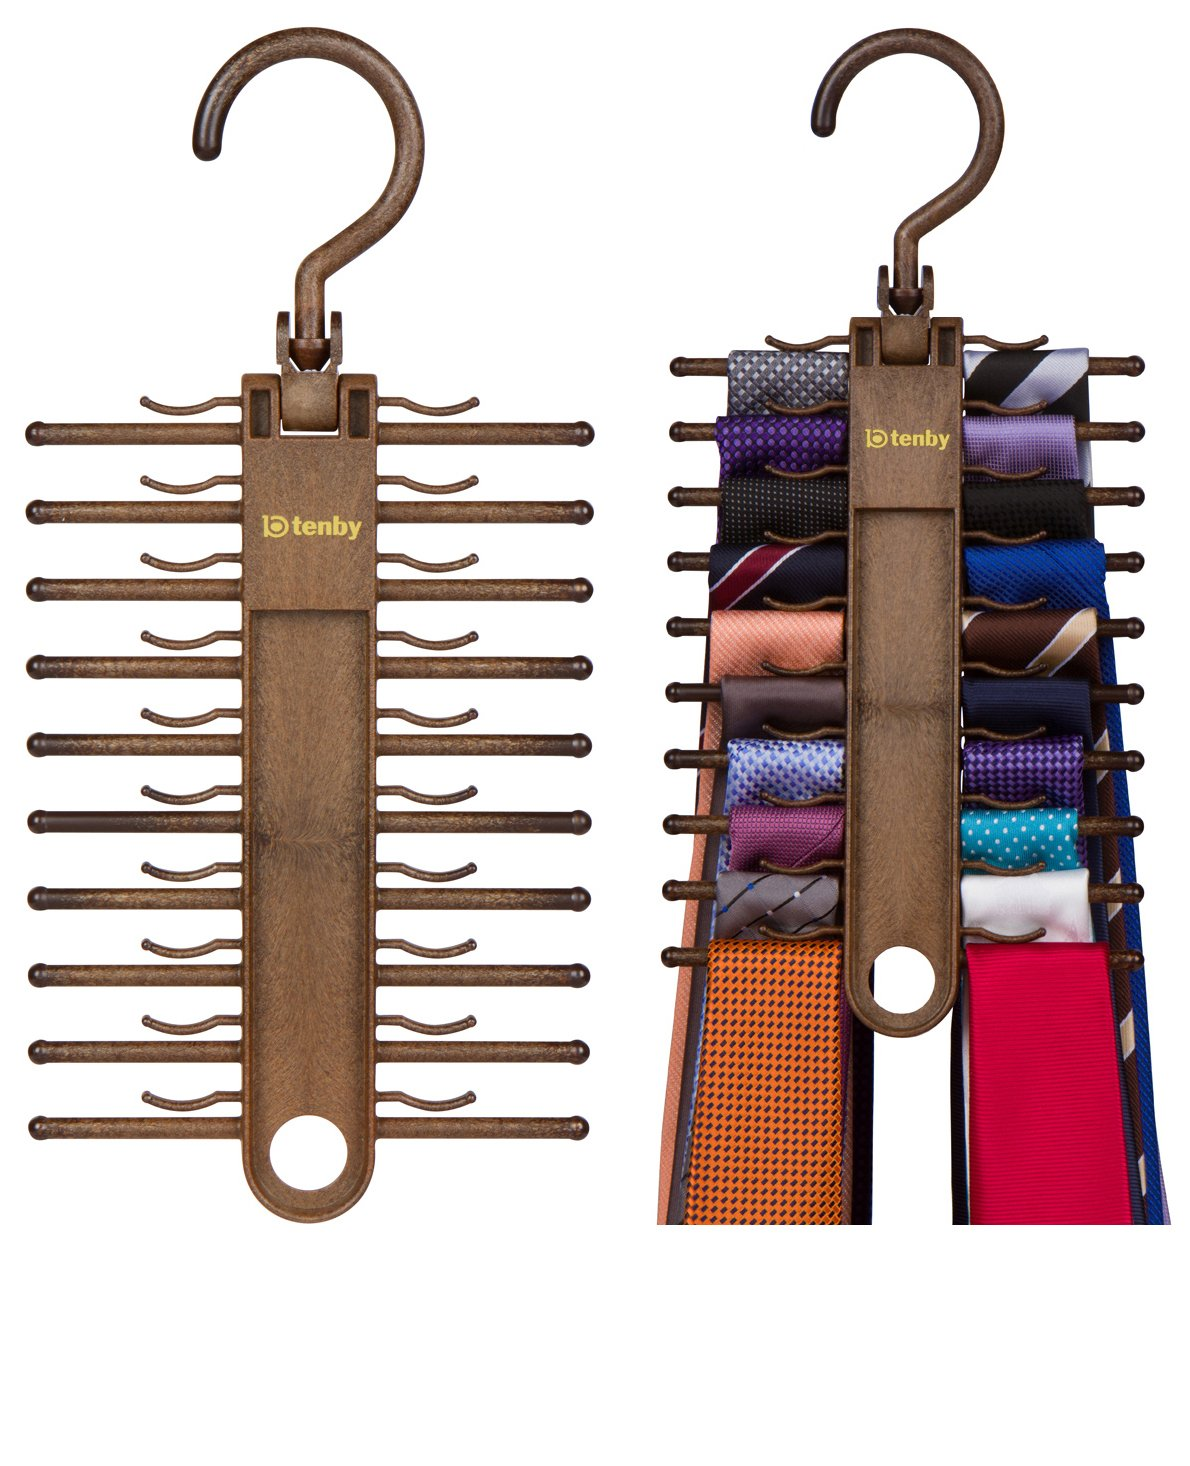 Tenby Living 2-PACK Tie Racks, Organizer, Hanger, Holder - Affordable Tie Rac. AllTools